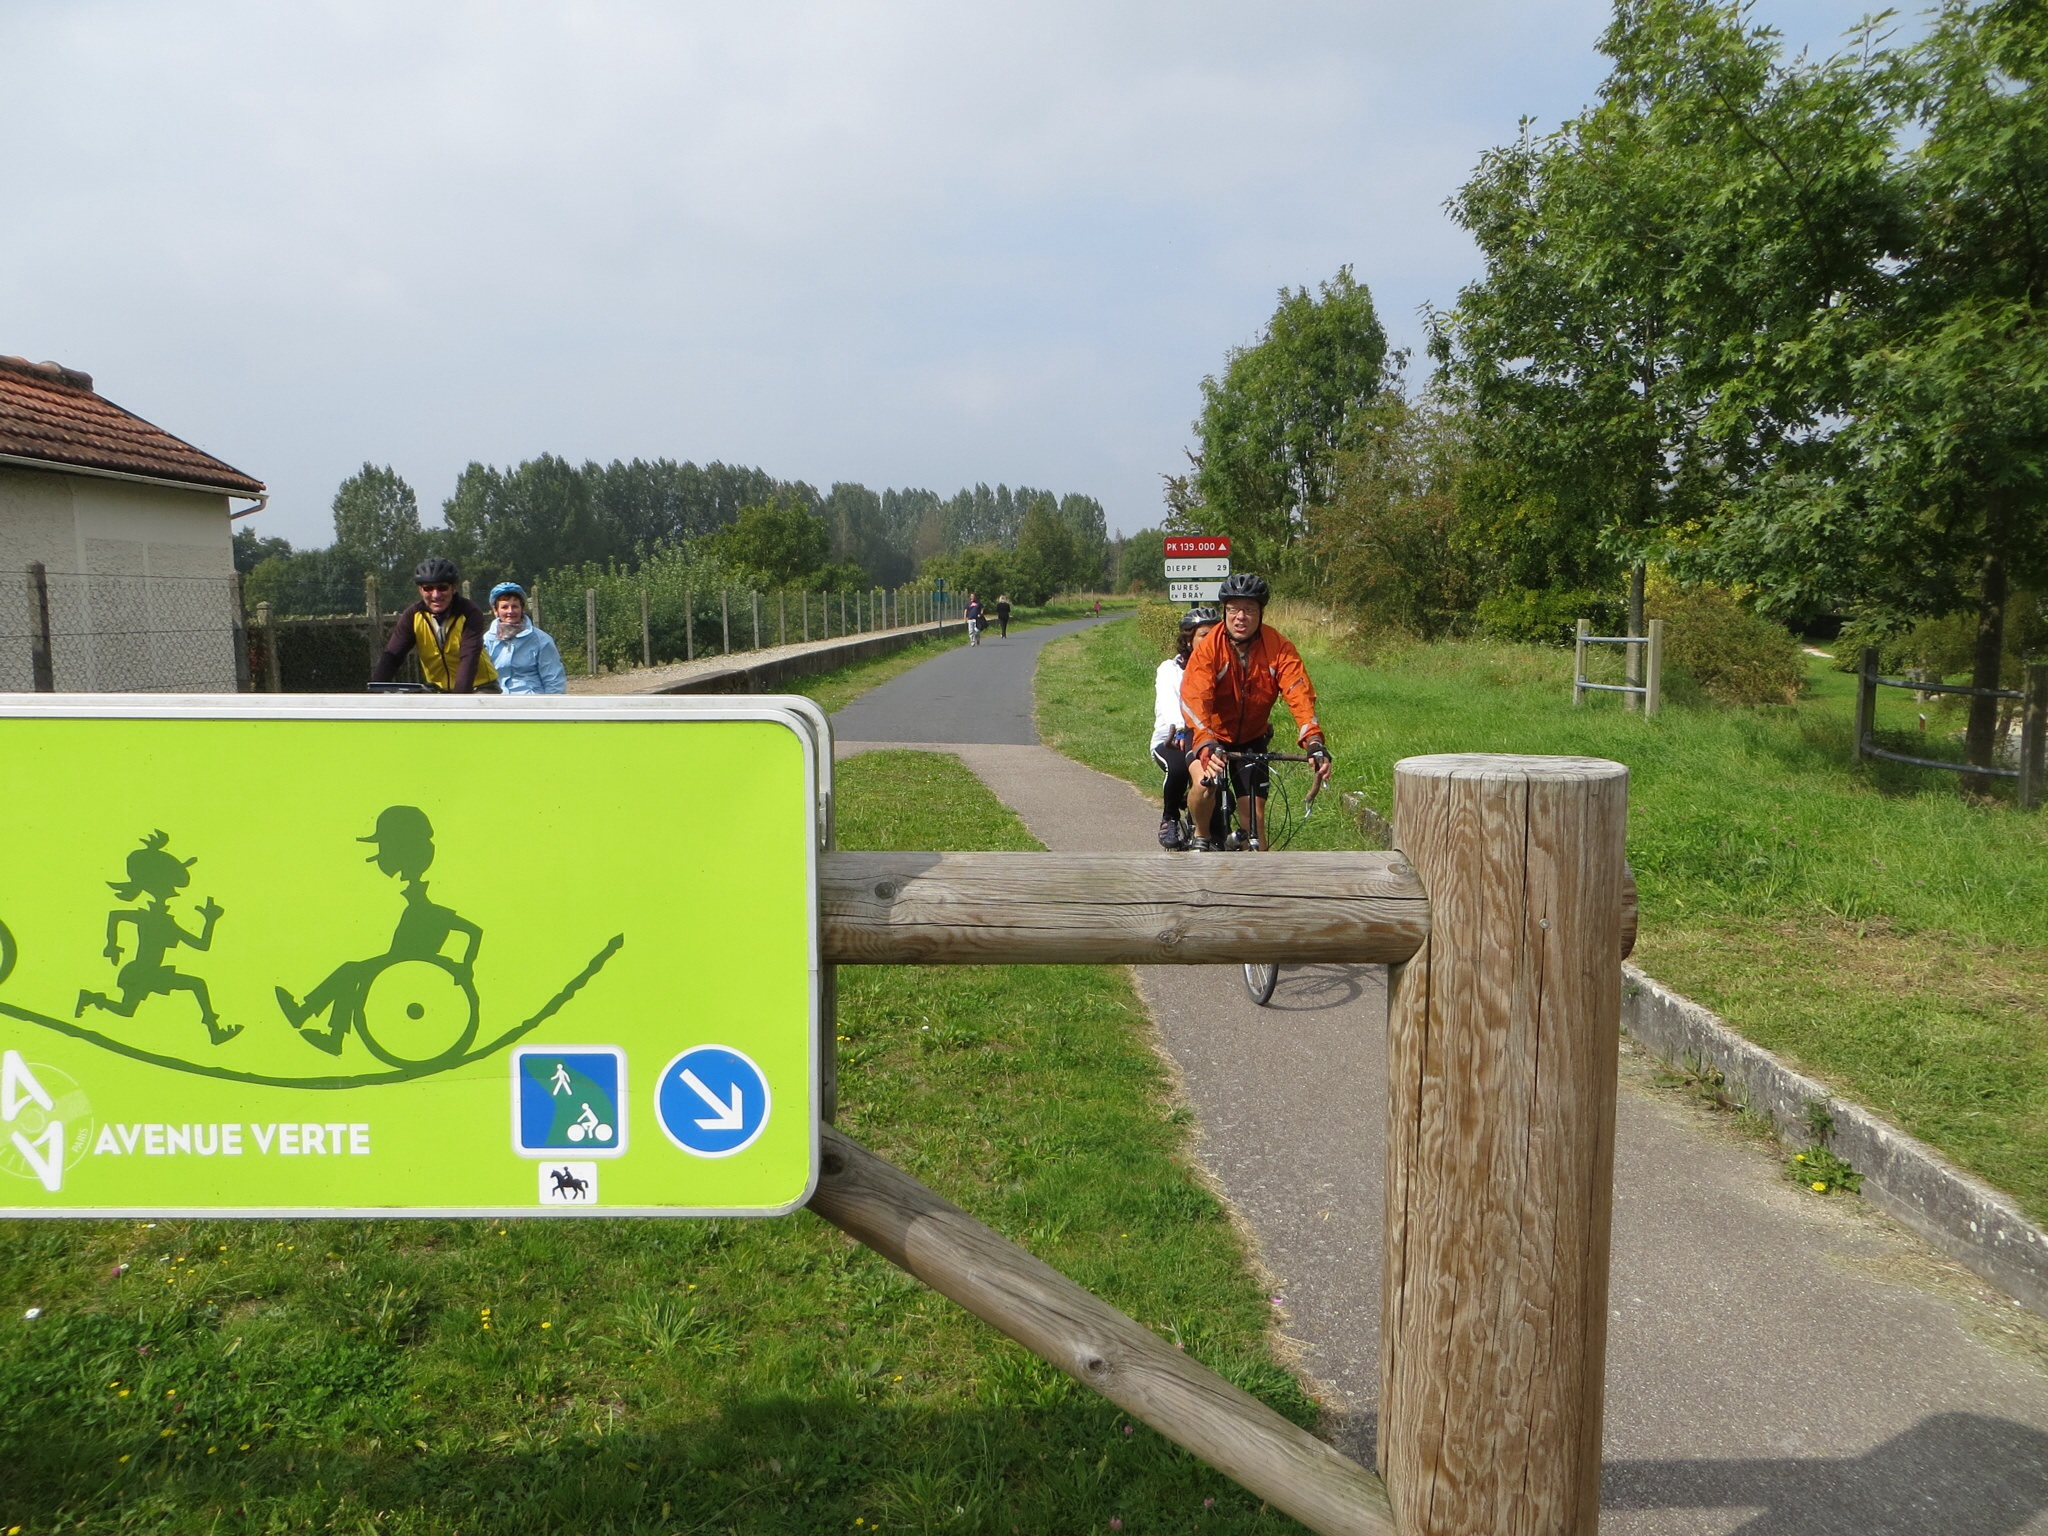 French rail-trail extended 30 miles from Forges les Eaux, part of bike route from Paris to London